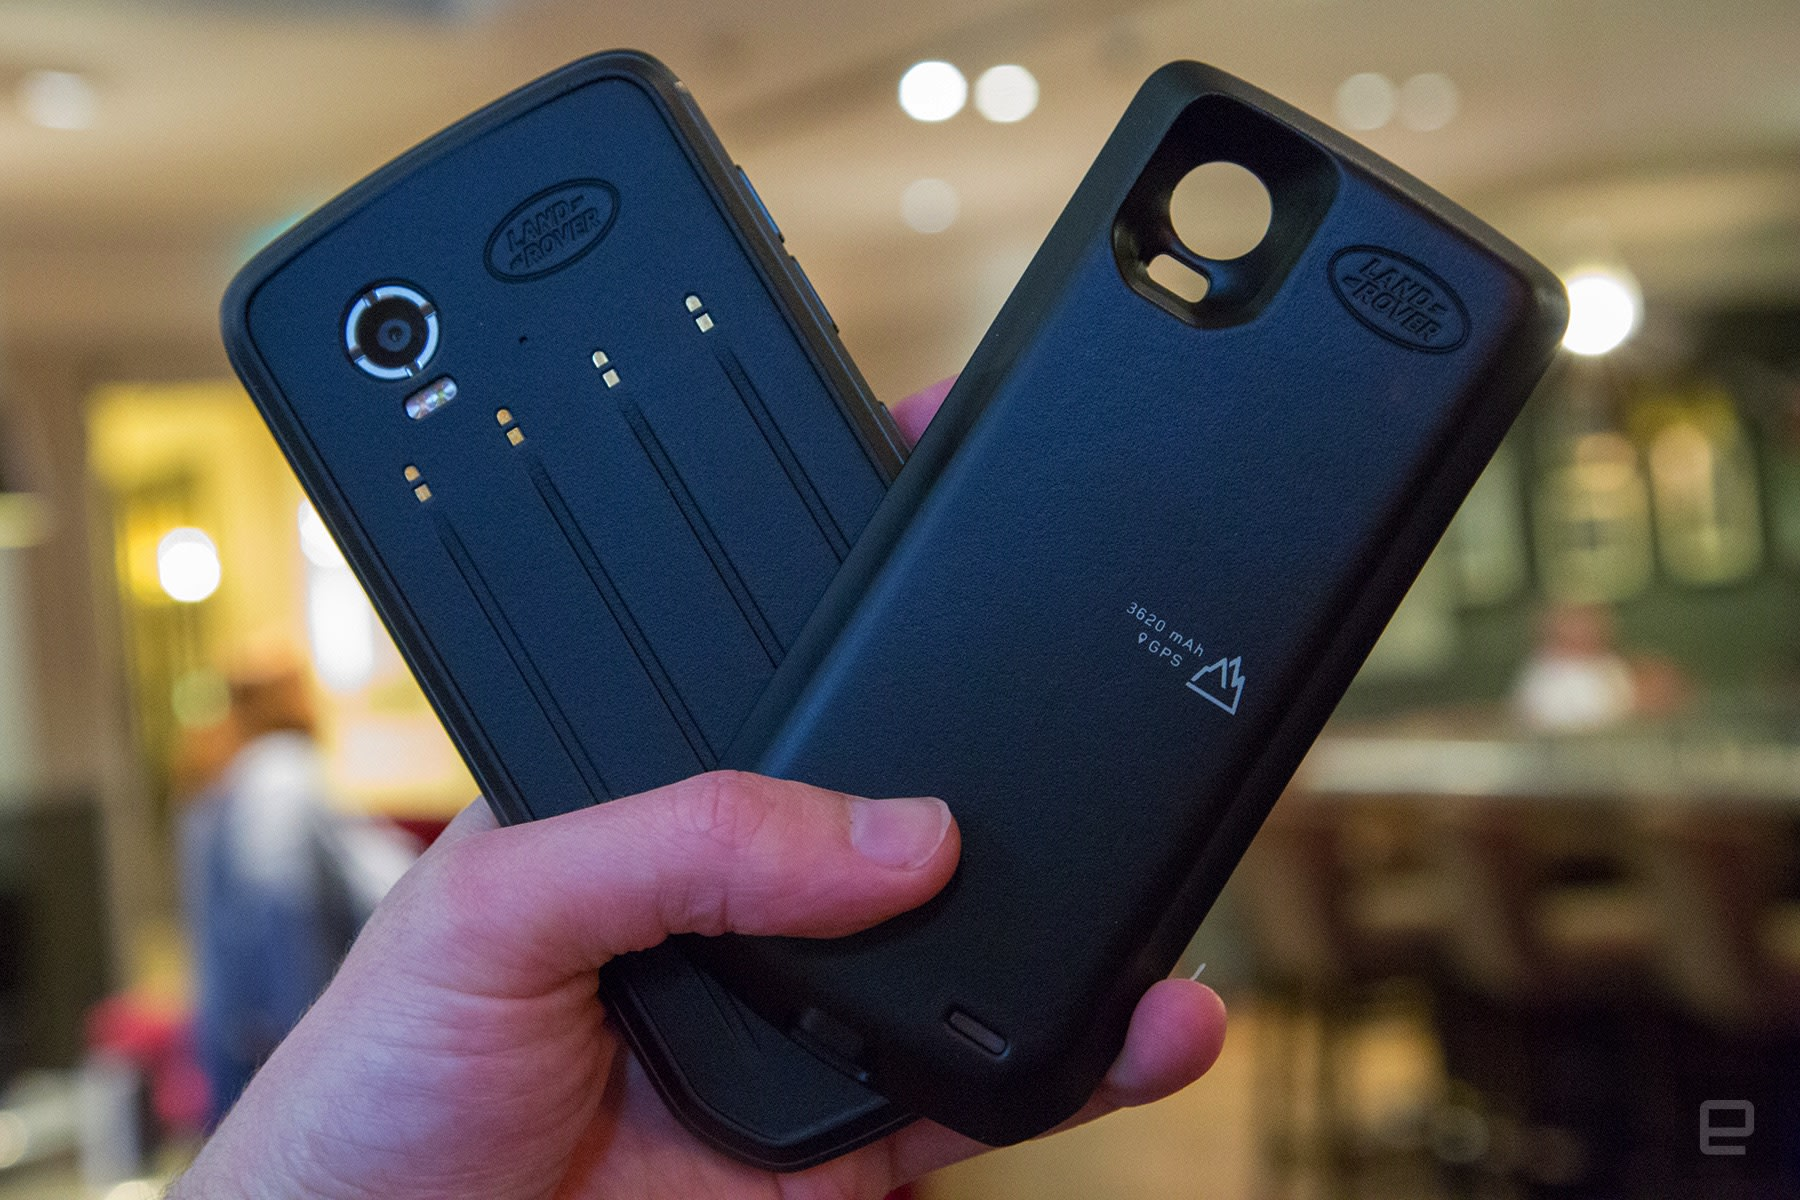 Land Rover Explore Check Out The Worlds Toughest Phone With 7600 Battery Life On Is Pretty Impressive As It Packed A Decent 4000mah Which Company Claims Can Last For 2 Days